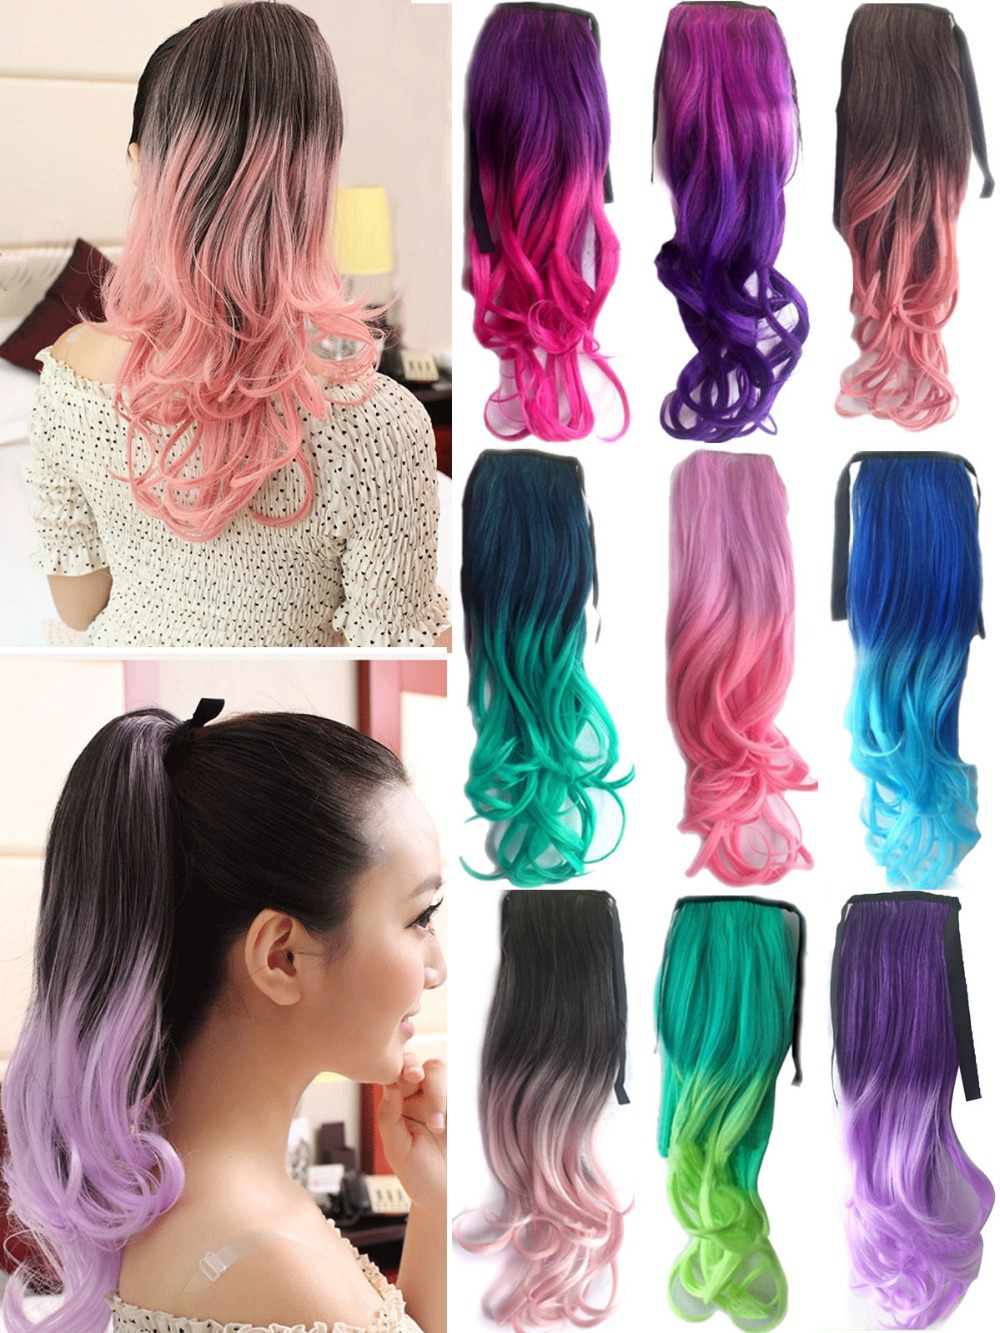 4 Warna Rambut Ombre Paling Trend